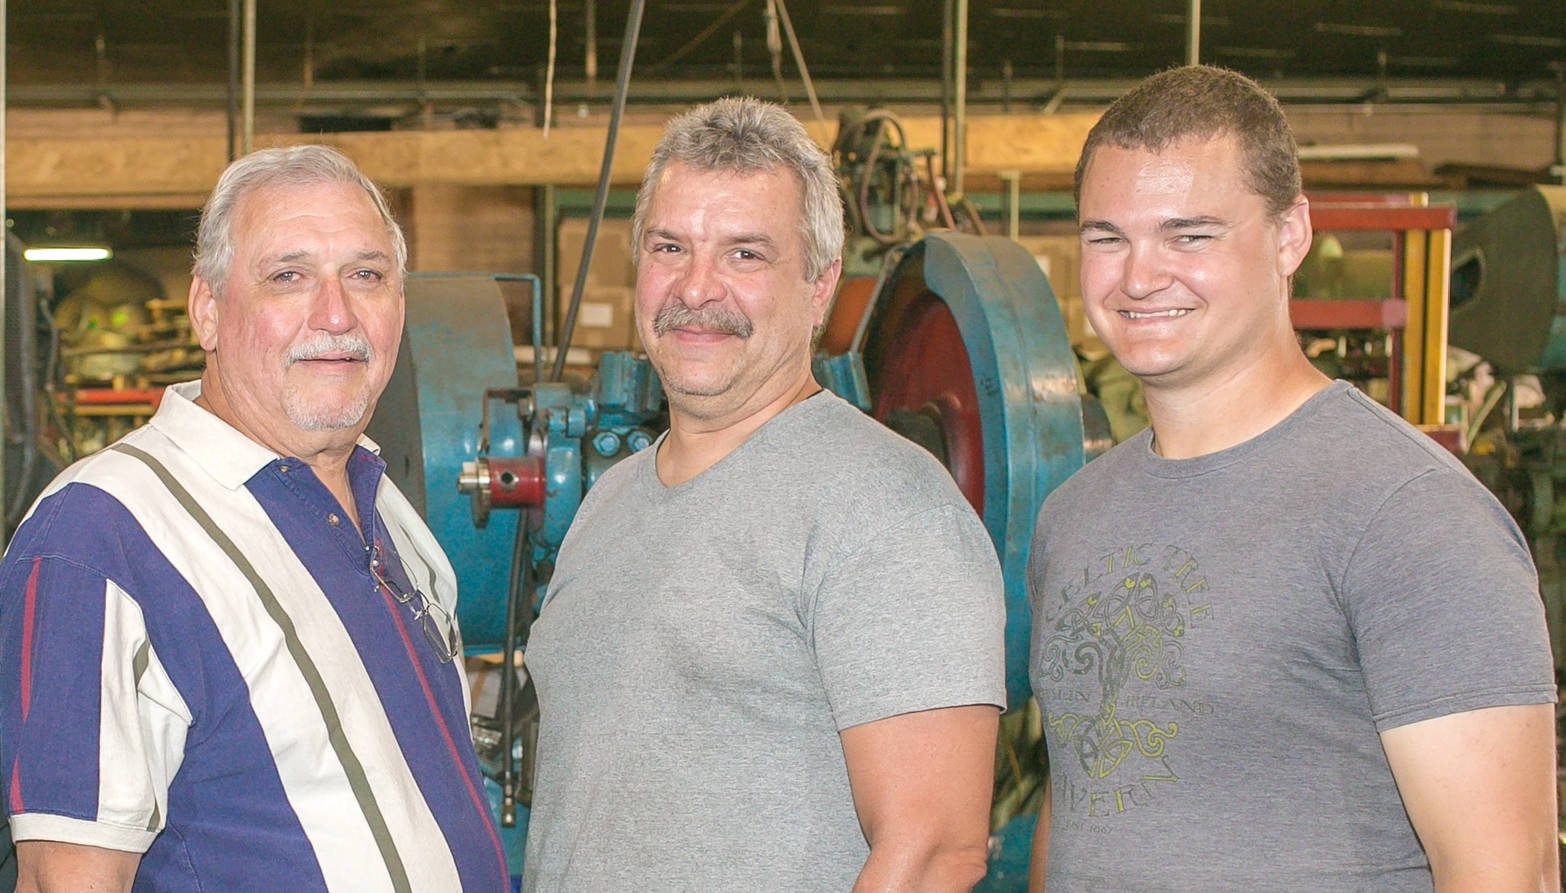 From left to right: Rich, Jack, and Corey of Lew-El Tool & MFG. CO.